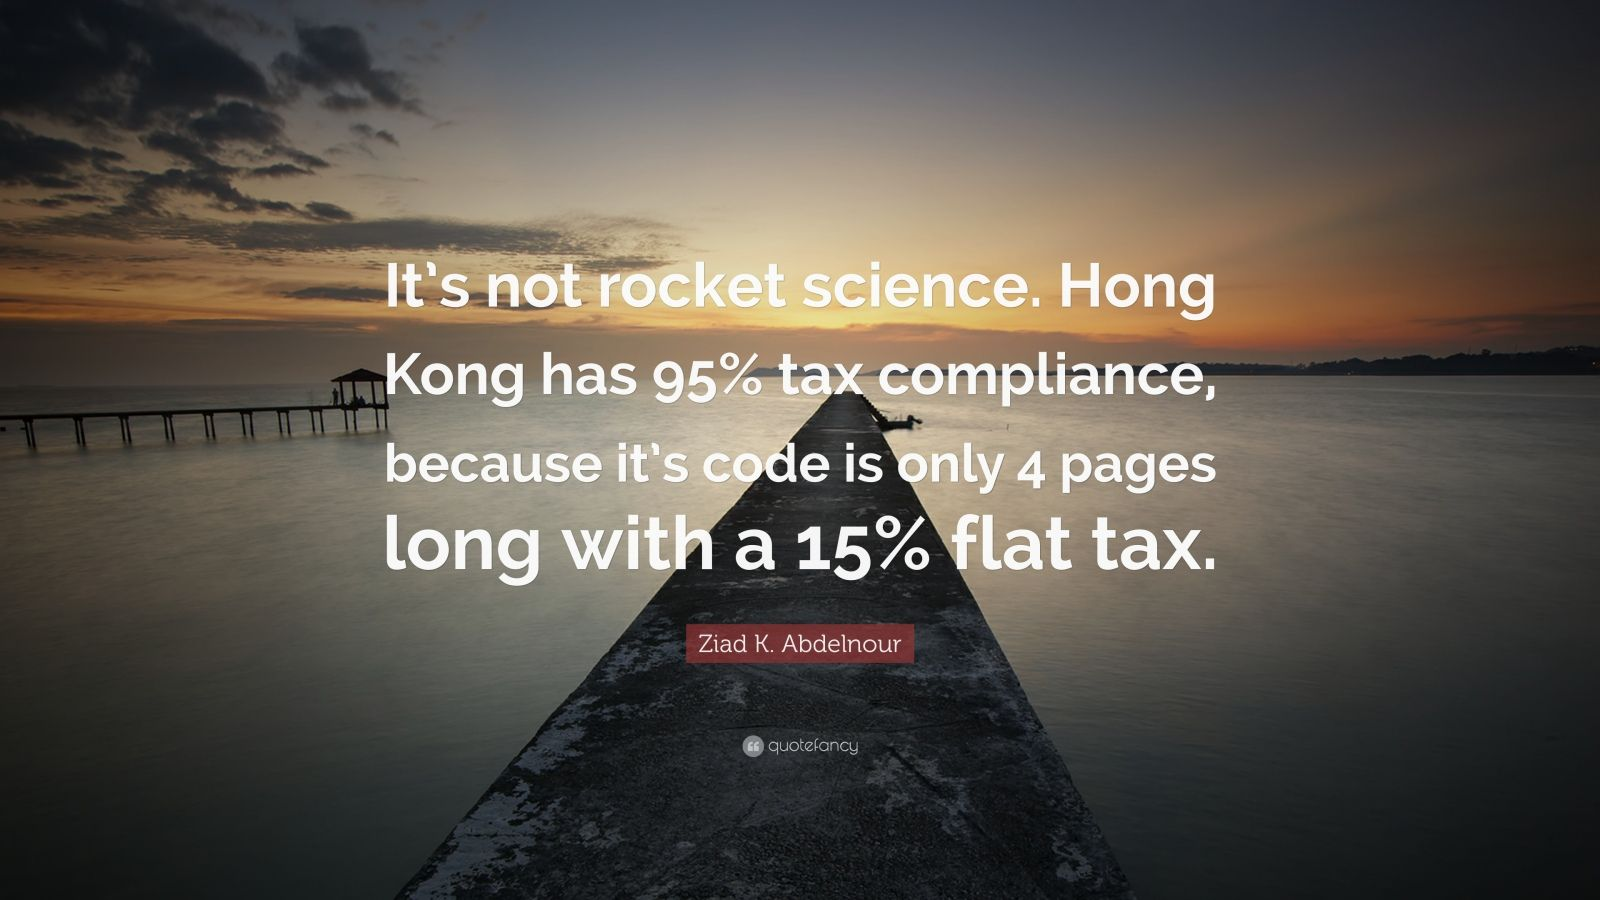 """Ziad K. Abdelnour Quote: """"It's not rocket science. Hong Kong has 95% tax compliance, because it's code is only 4 pages long with a 15% flat tax."""""""